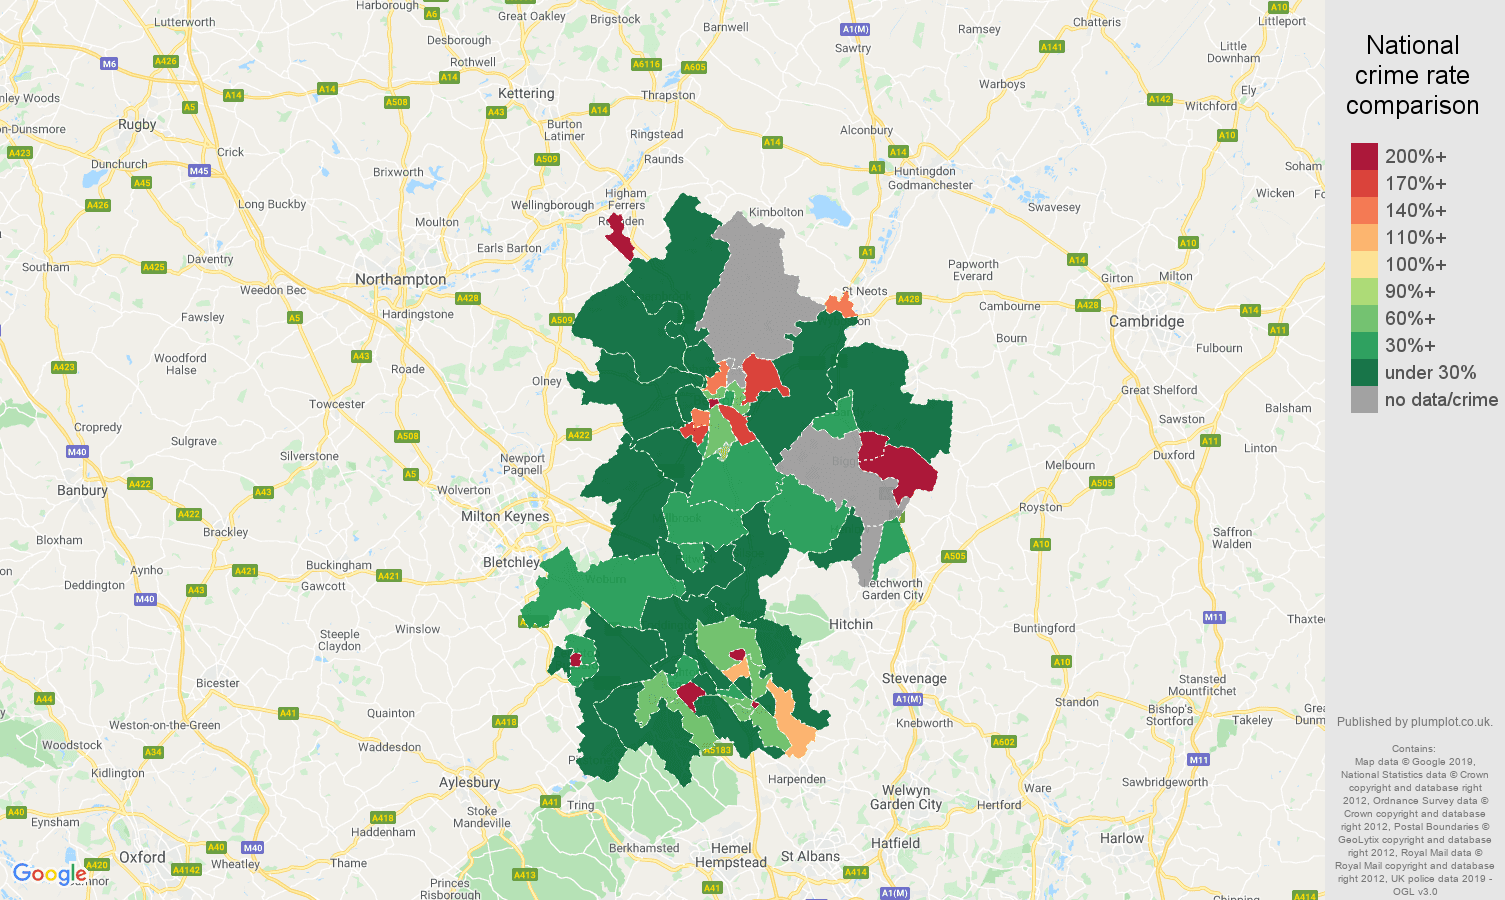 Bedfordshire shoplifting crime rate comparison map